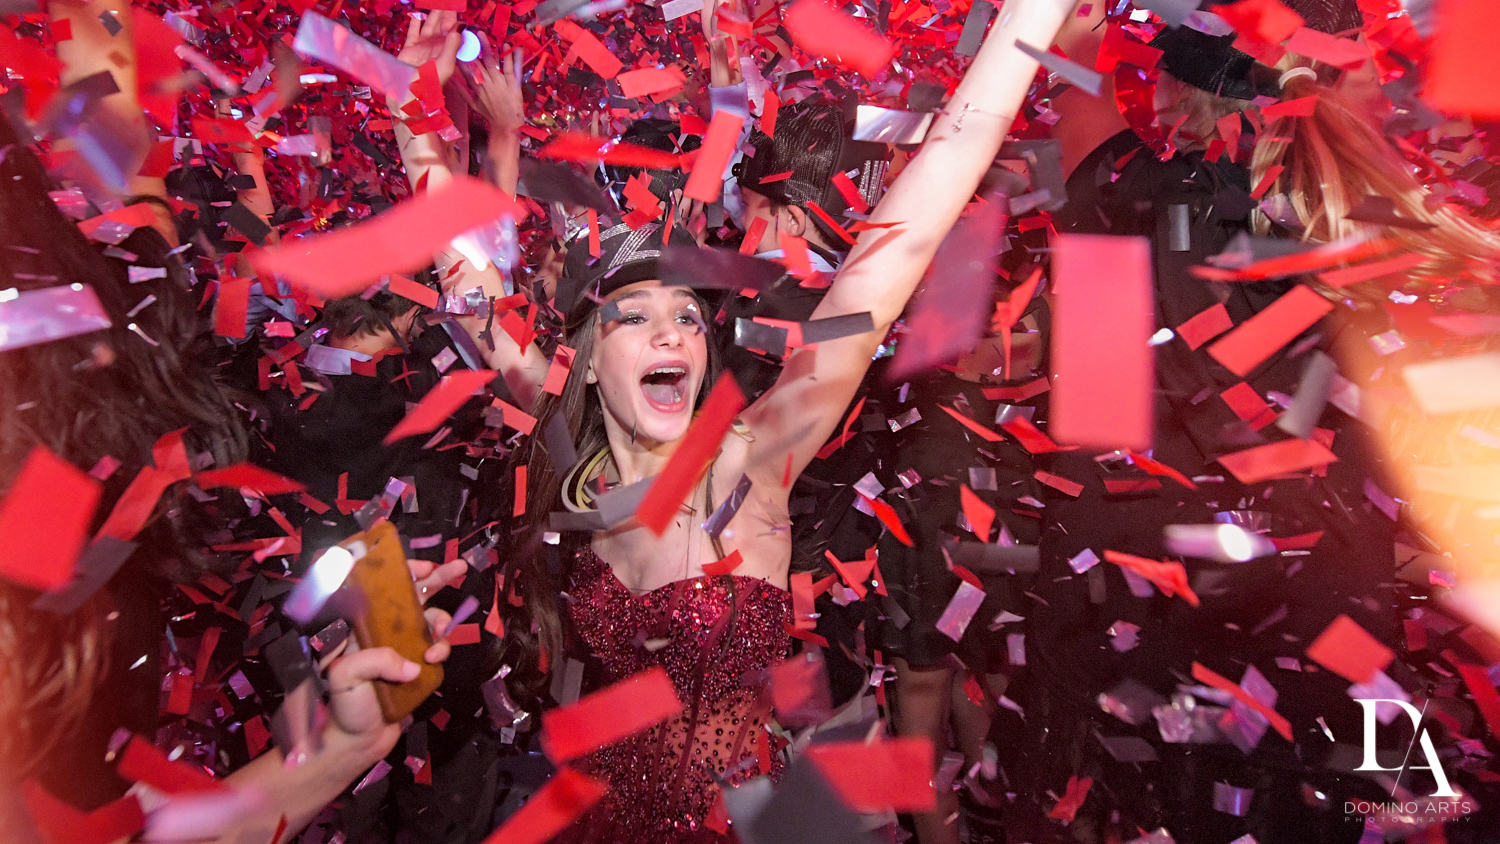 crazy confetti at Luxury Celebrity Bat Mitzvah at Four Seasons Hotel Miami by Domino Arts Photography